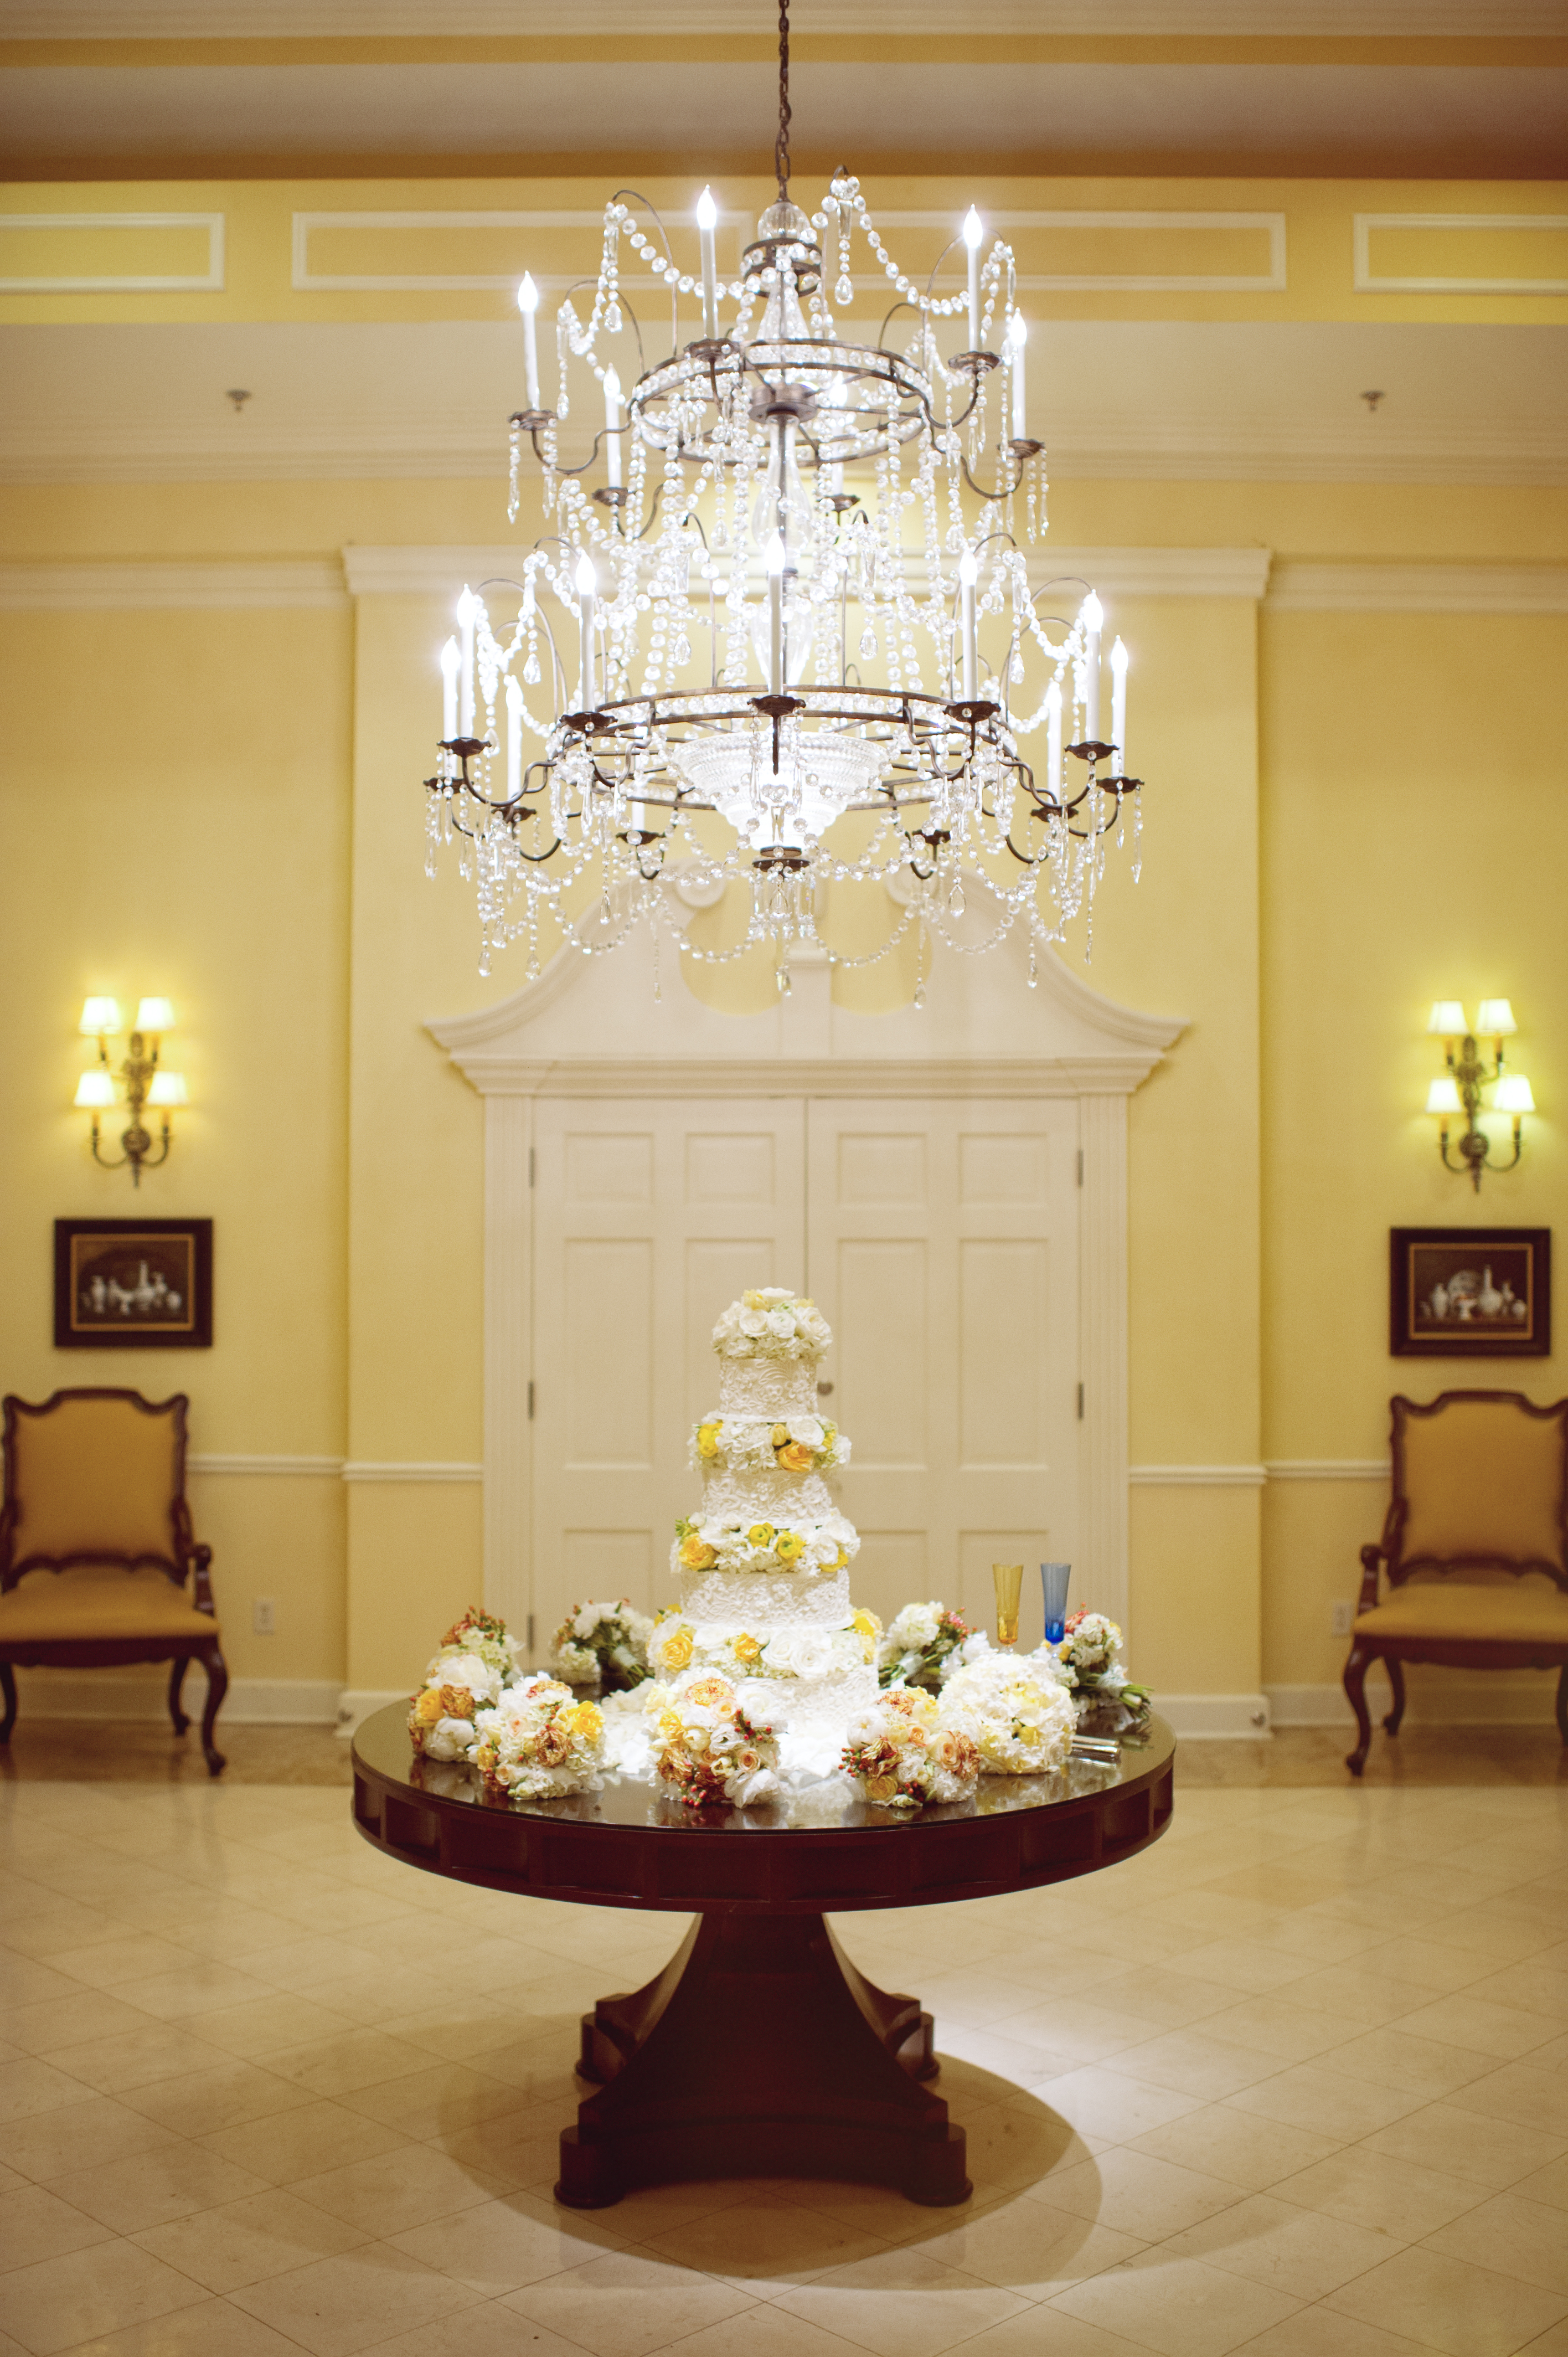 Cakes, white, yellow, cake, Chandelier, Jen kevin